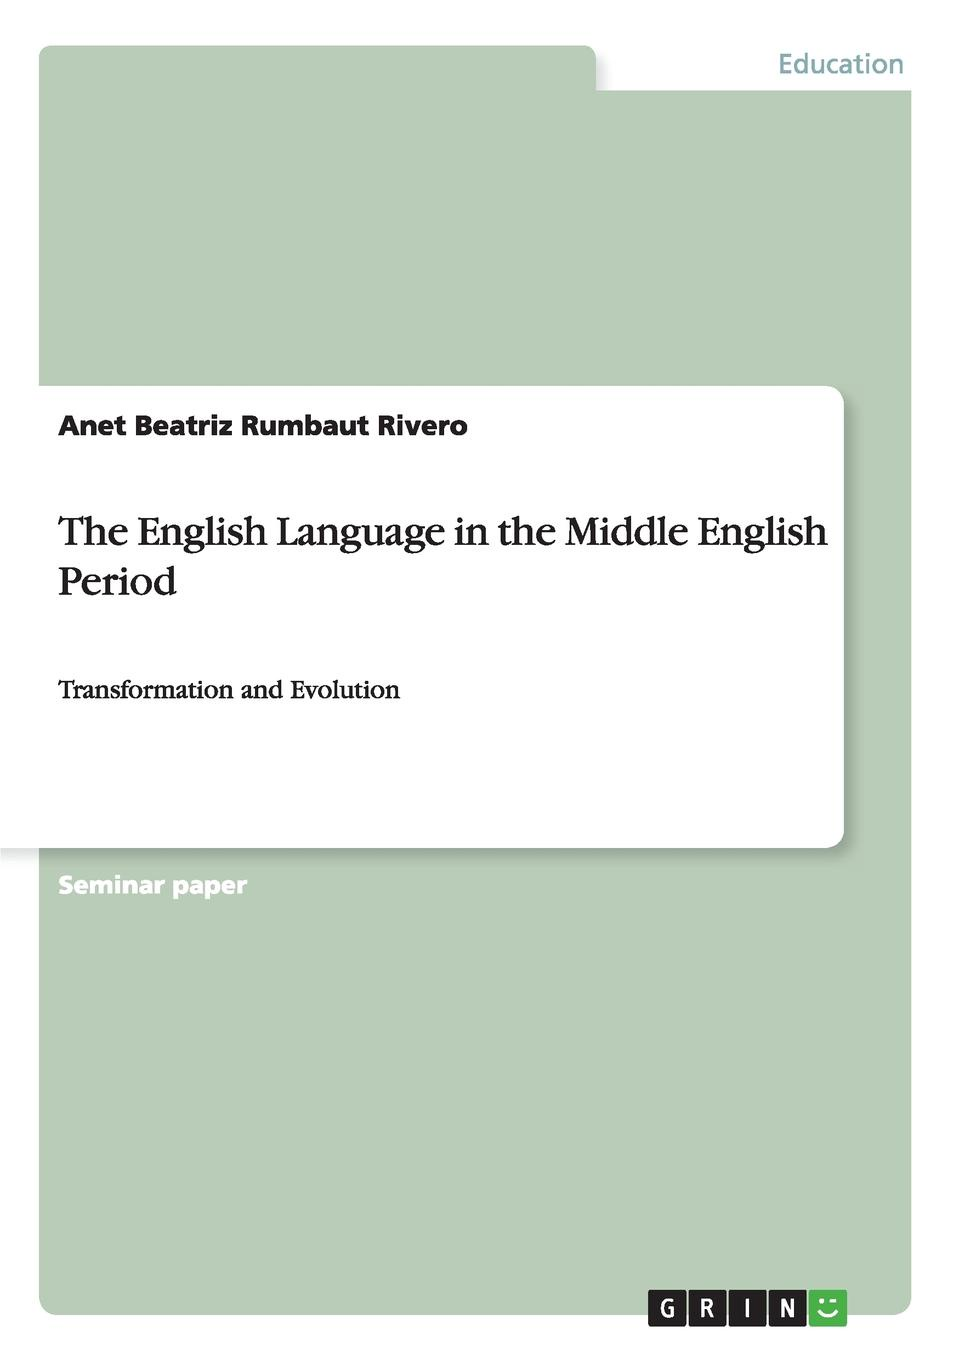 Anet Beatriz Rumbaut Rivero The English Language in the Middle English Period